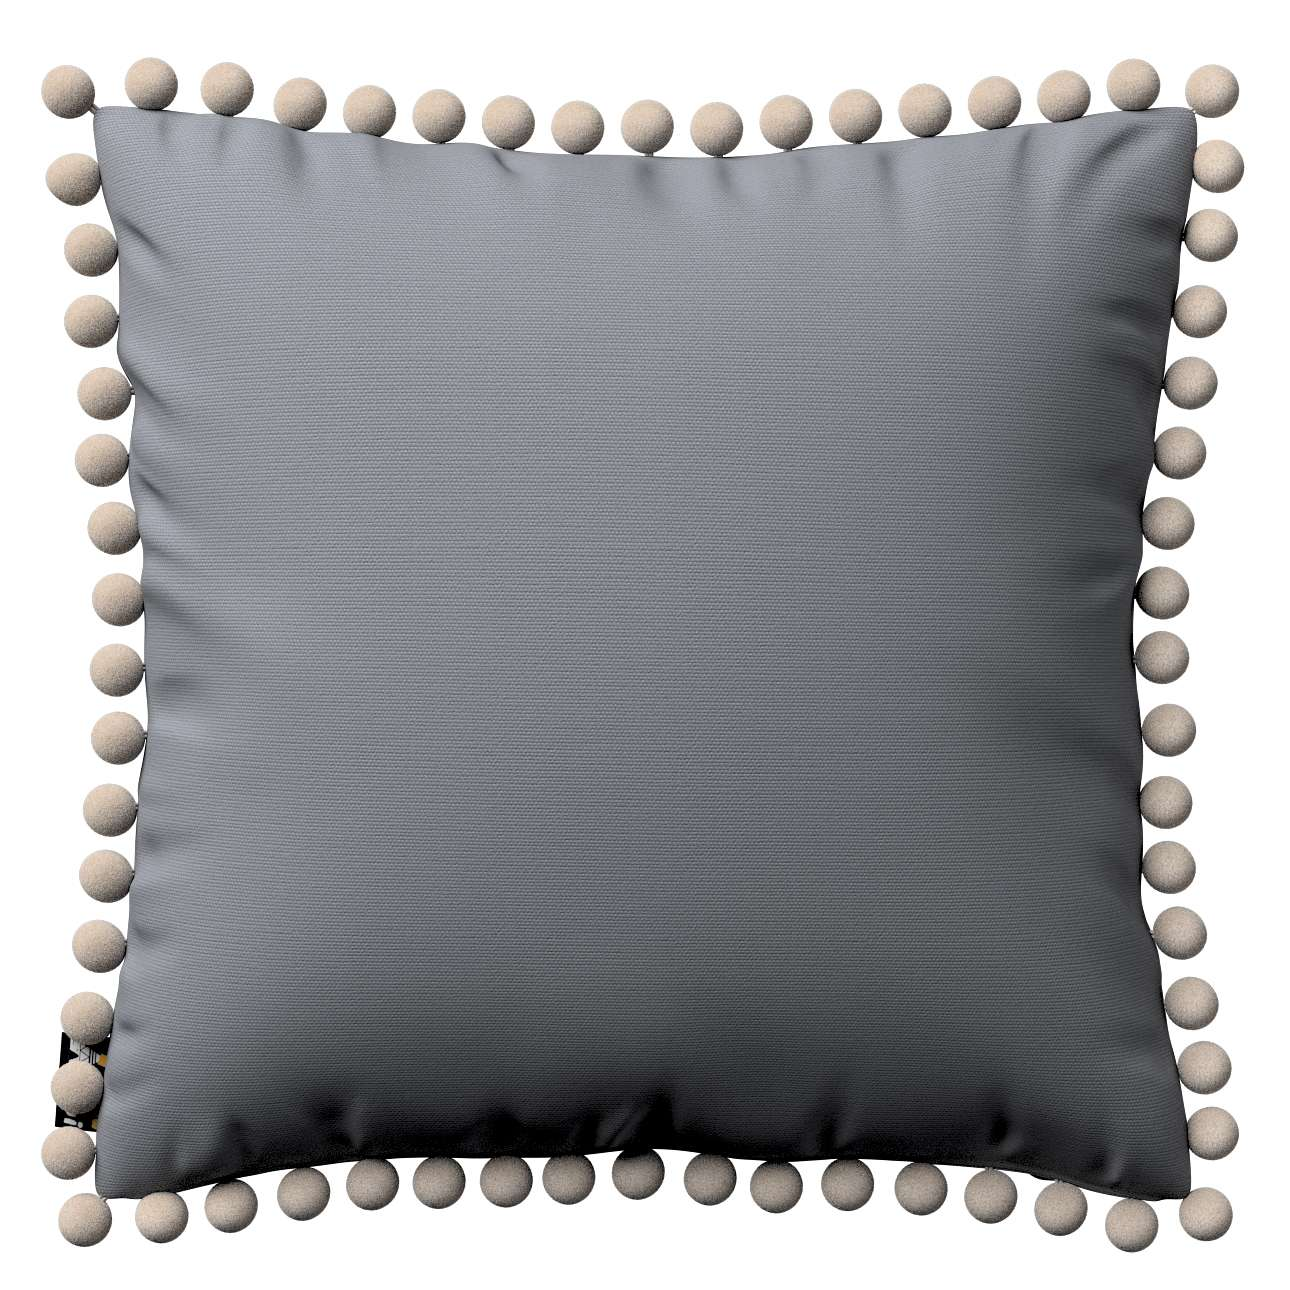 Daisy cushion covers with pom poms in collection Cotton Story, fabric: 702-07